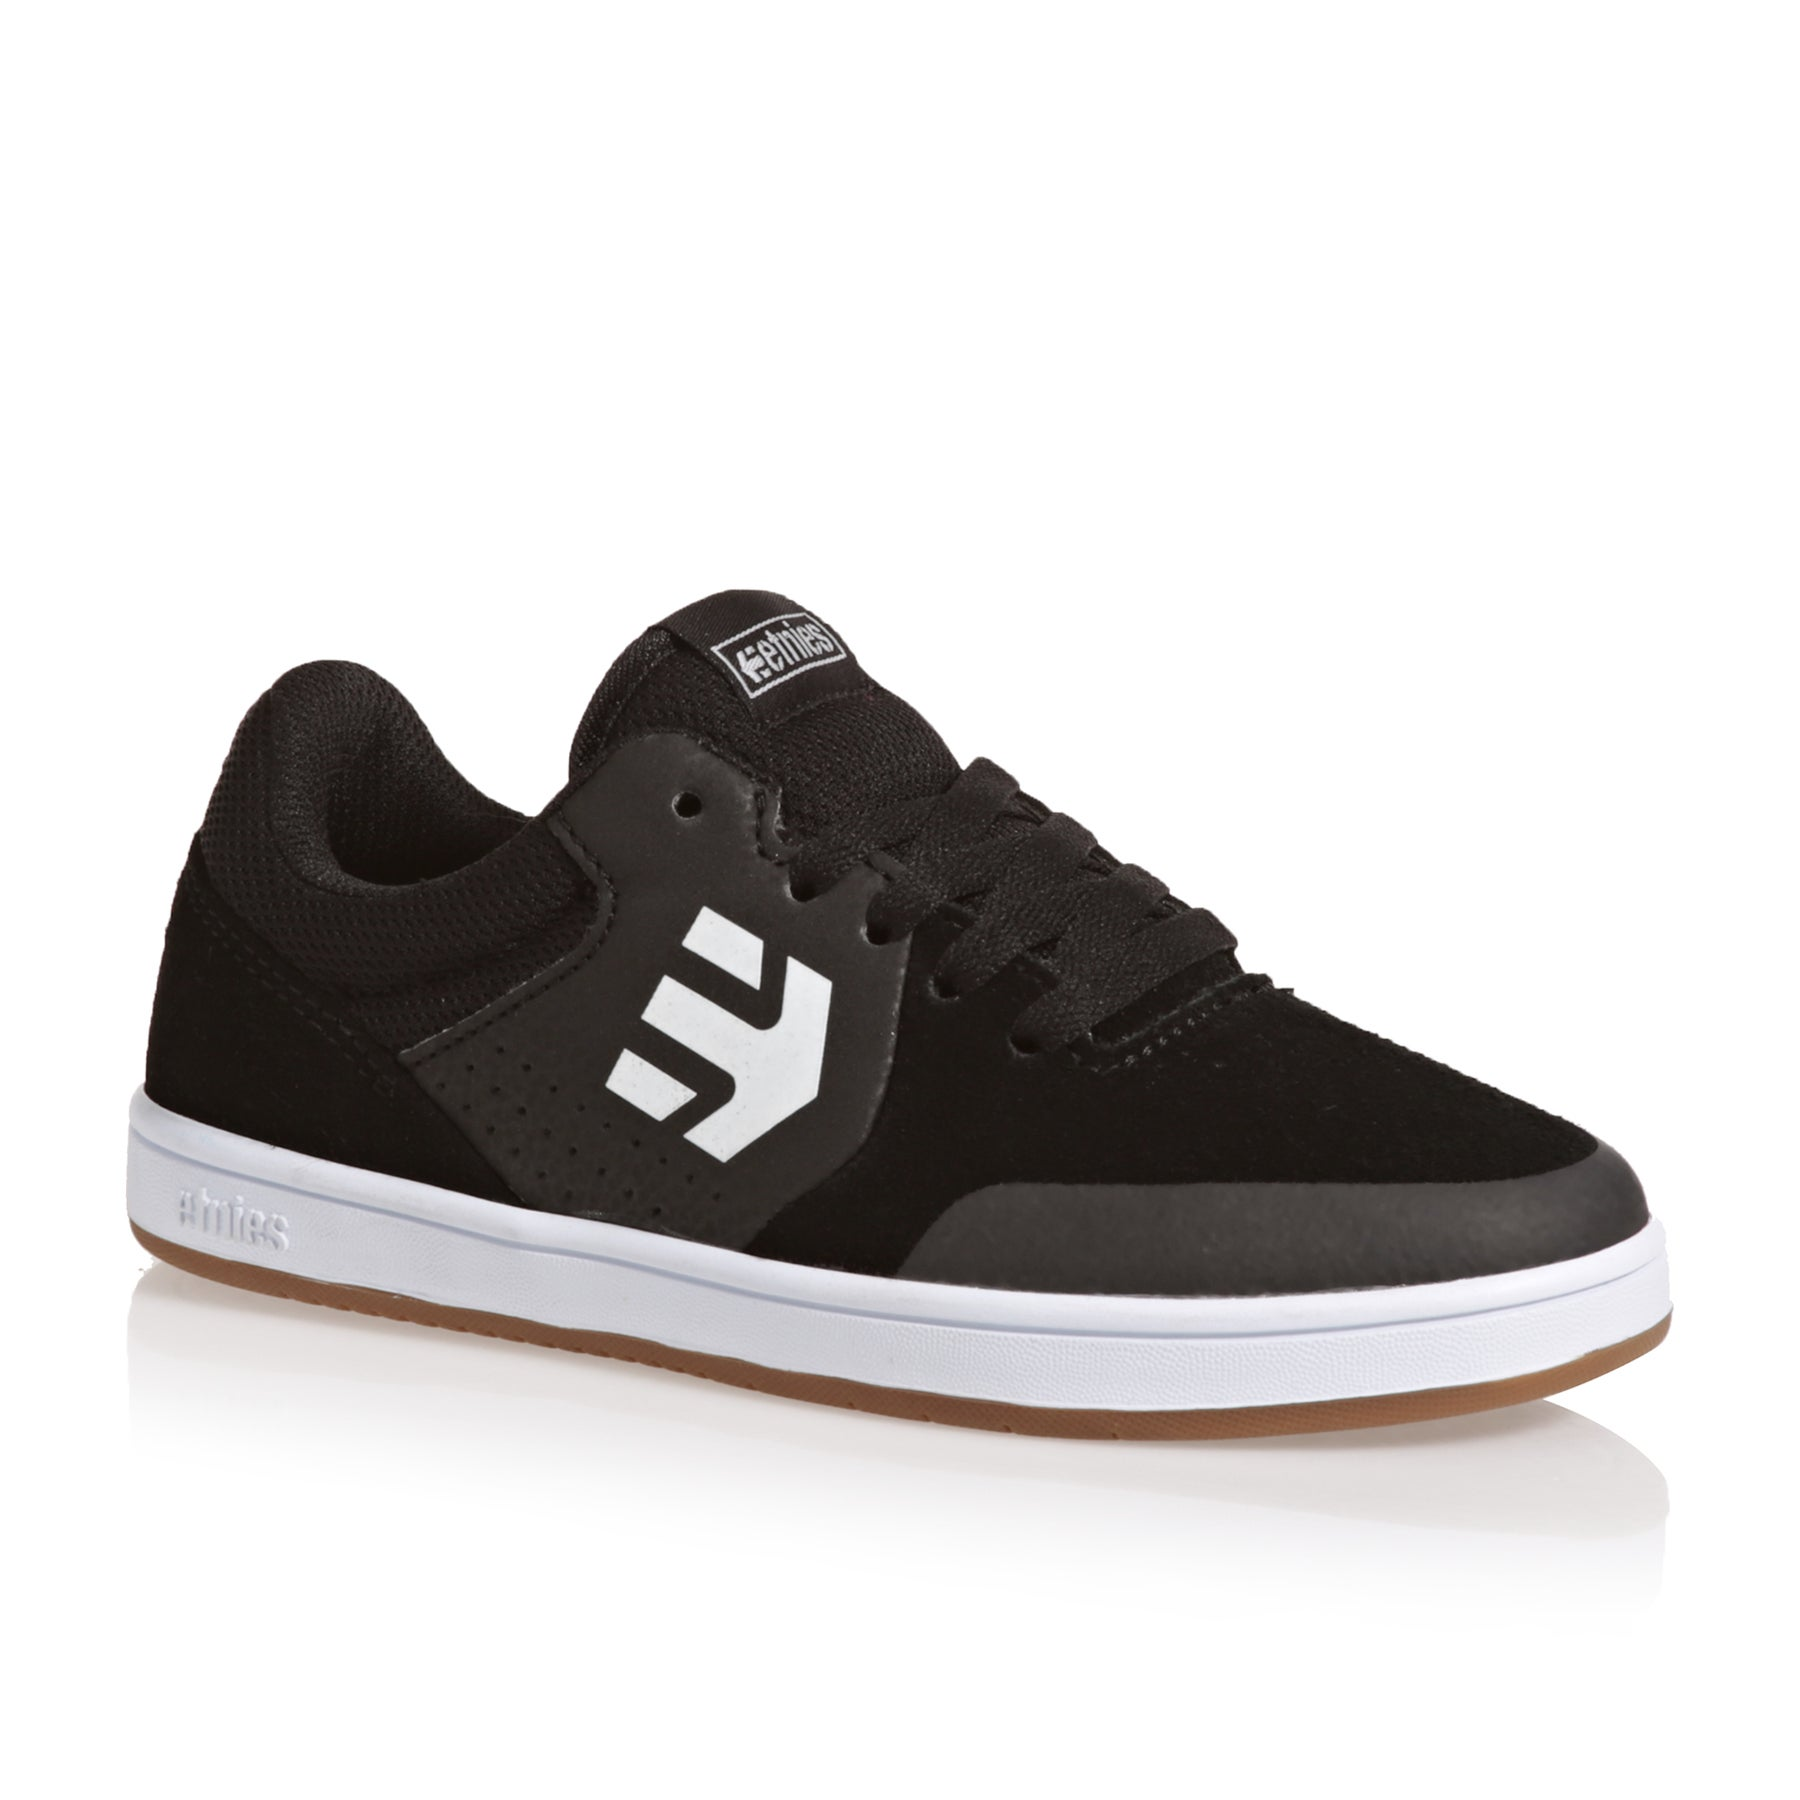 Etnies Marana Kids Shoes - Black Gum White